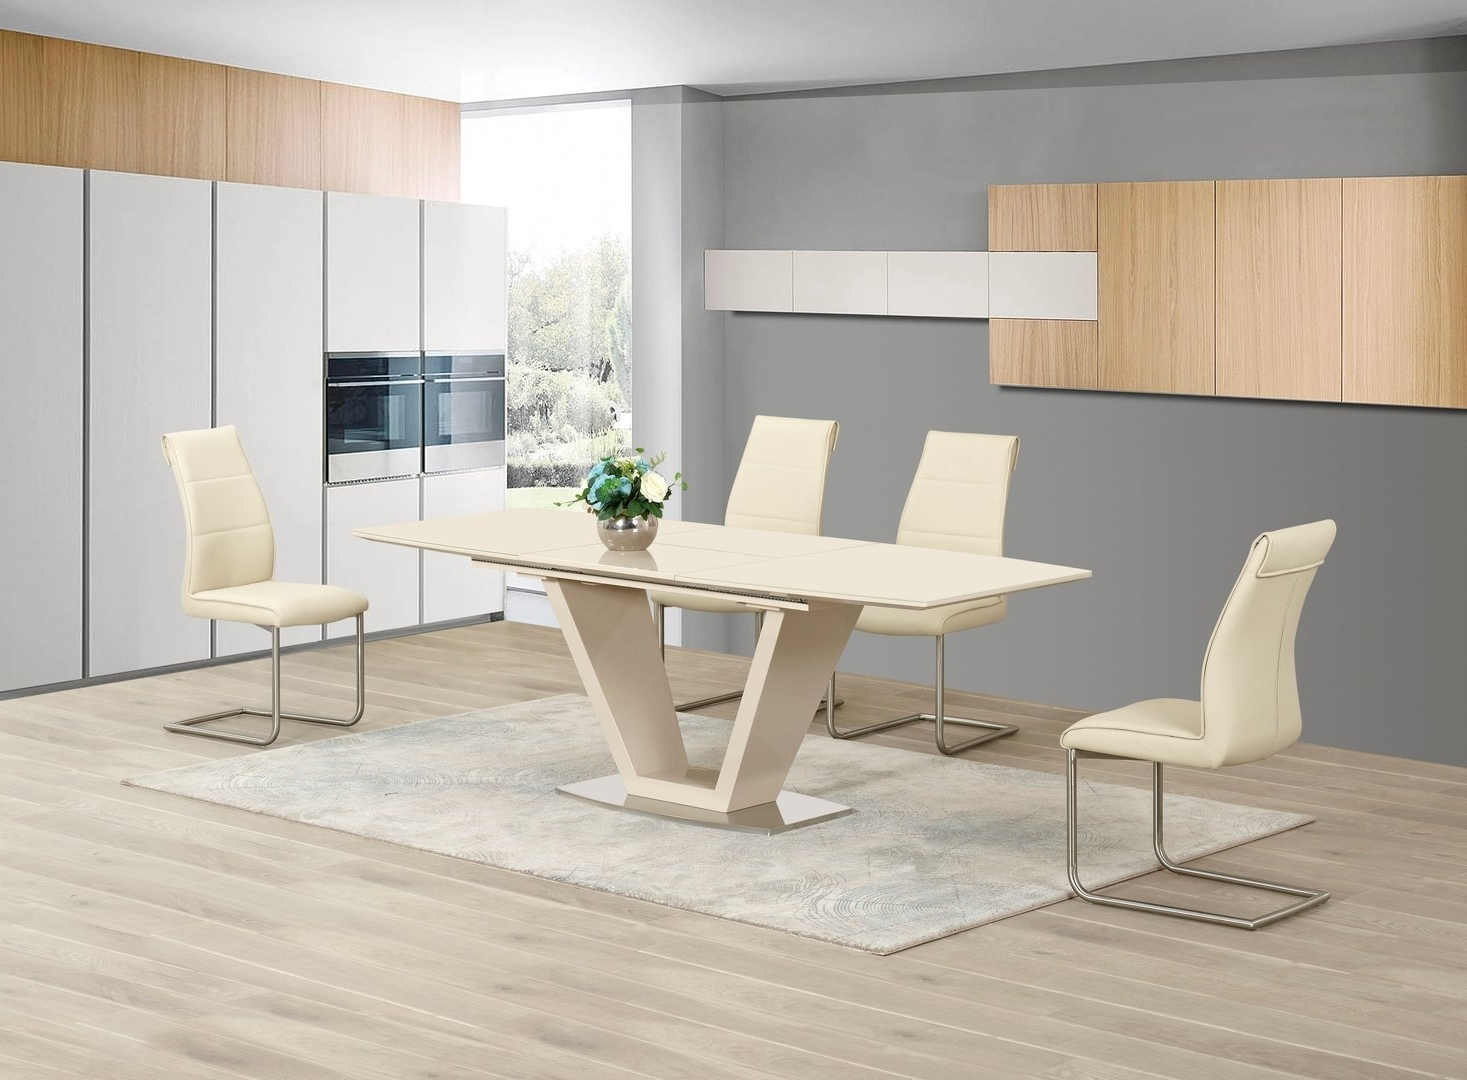 Extending Cream Glass High Gloss Dining Table And 8 Cream Chairs In Trendy Extending Dining Tables Sets (View 4 of 25)